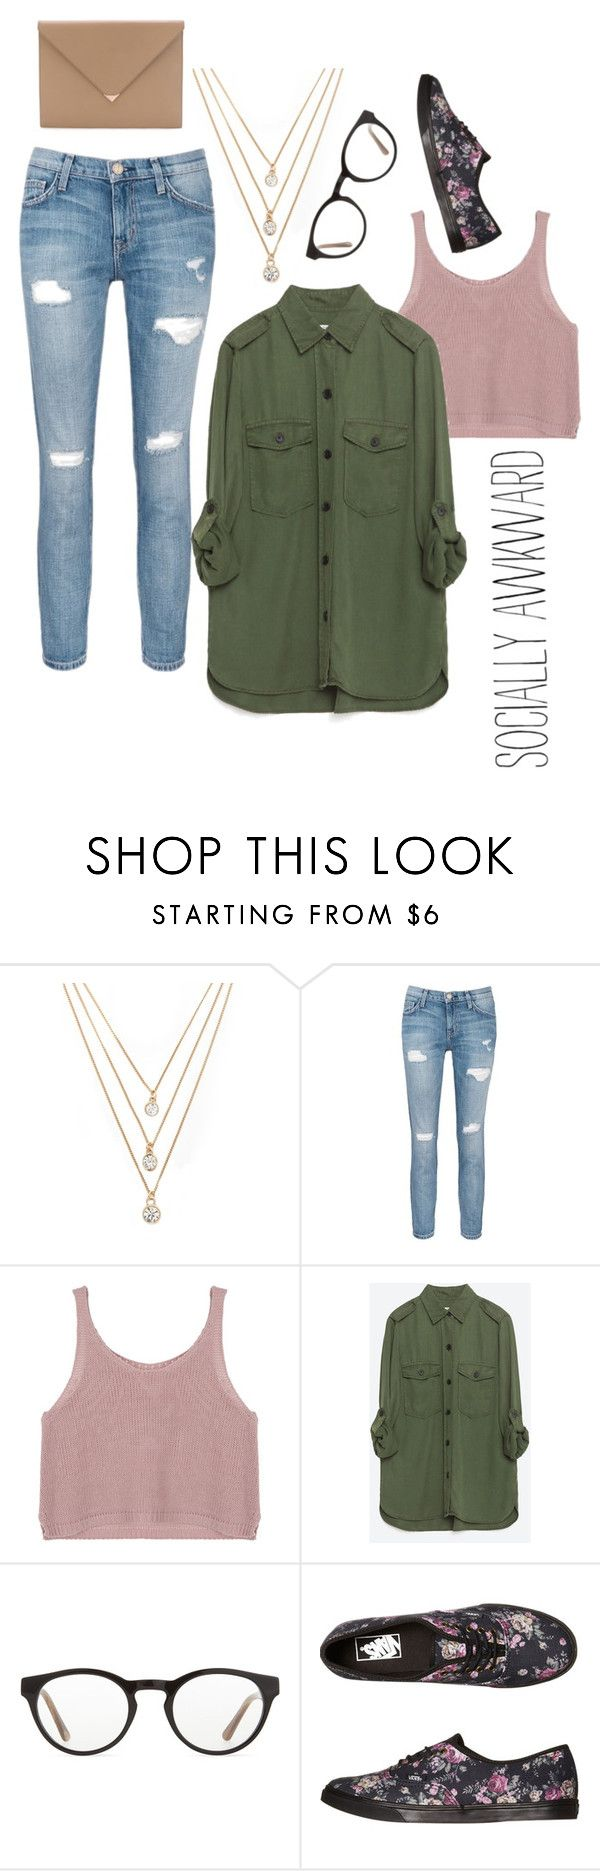 """""""///that awkward moment between birth and death\\\"""" by adriannaslokis ❤ liked on Polyvore featuring moda, Forever 21, Current/Elliott, Zara, Illesteva, Vans e Alexander Wang"""